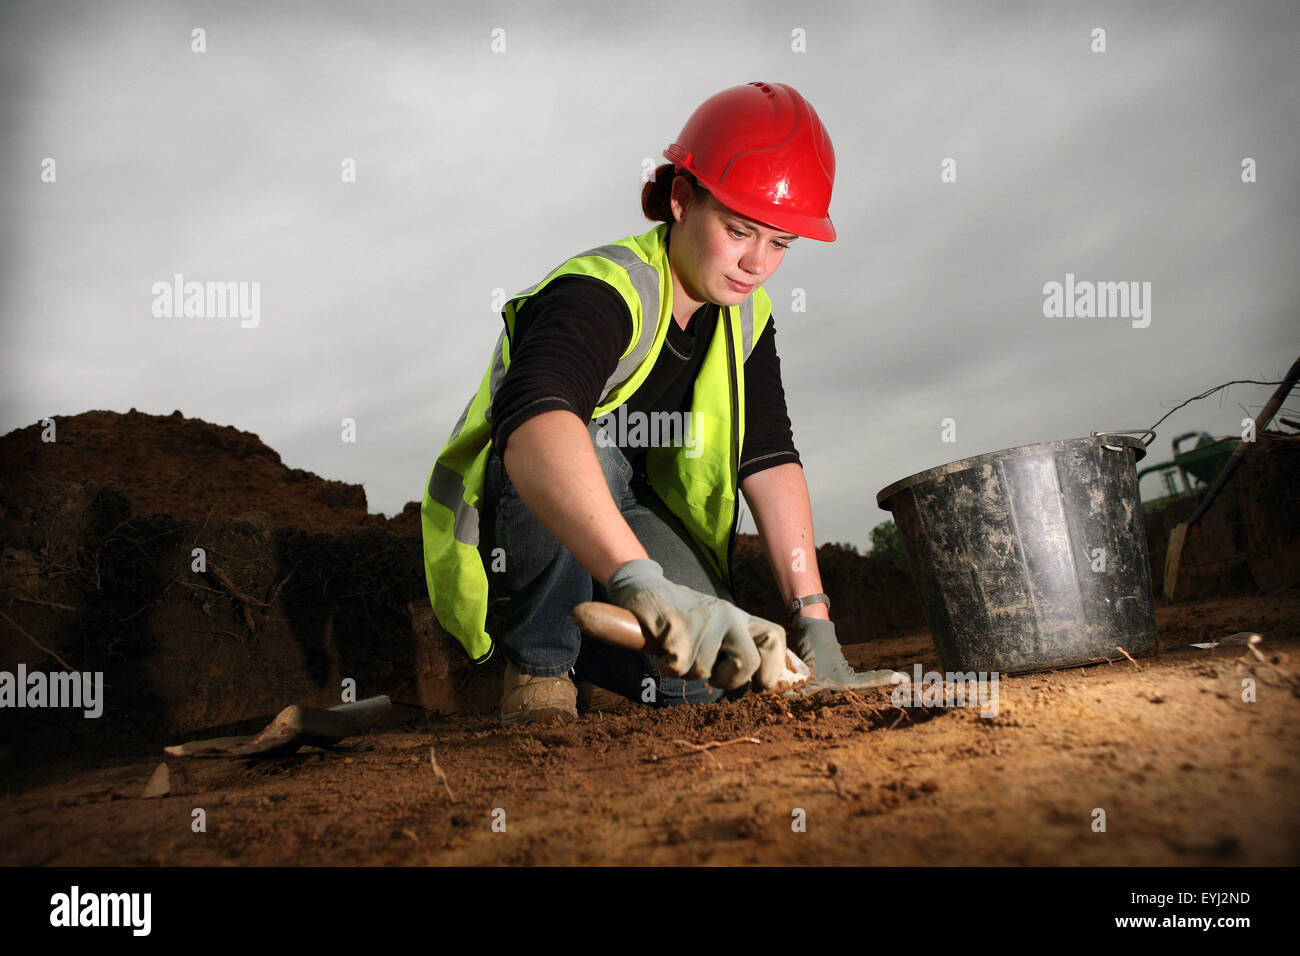 Archaelogical dig at City of Salford Stadium site. Archaelologist Jo Wright,31, excavates a linear feature. - Stock Image